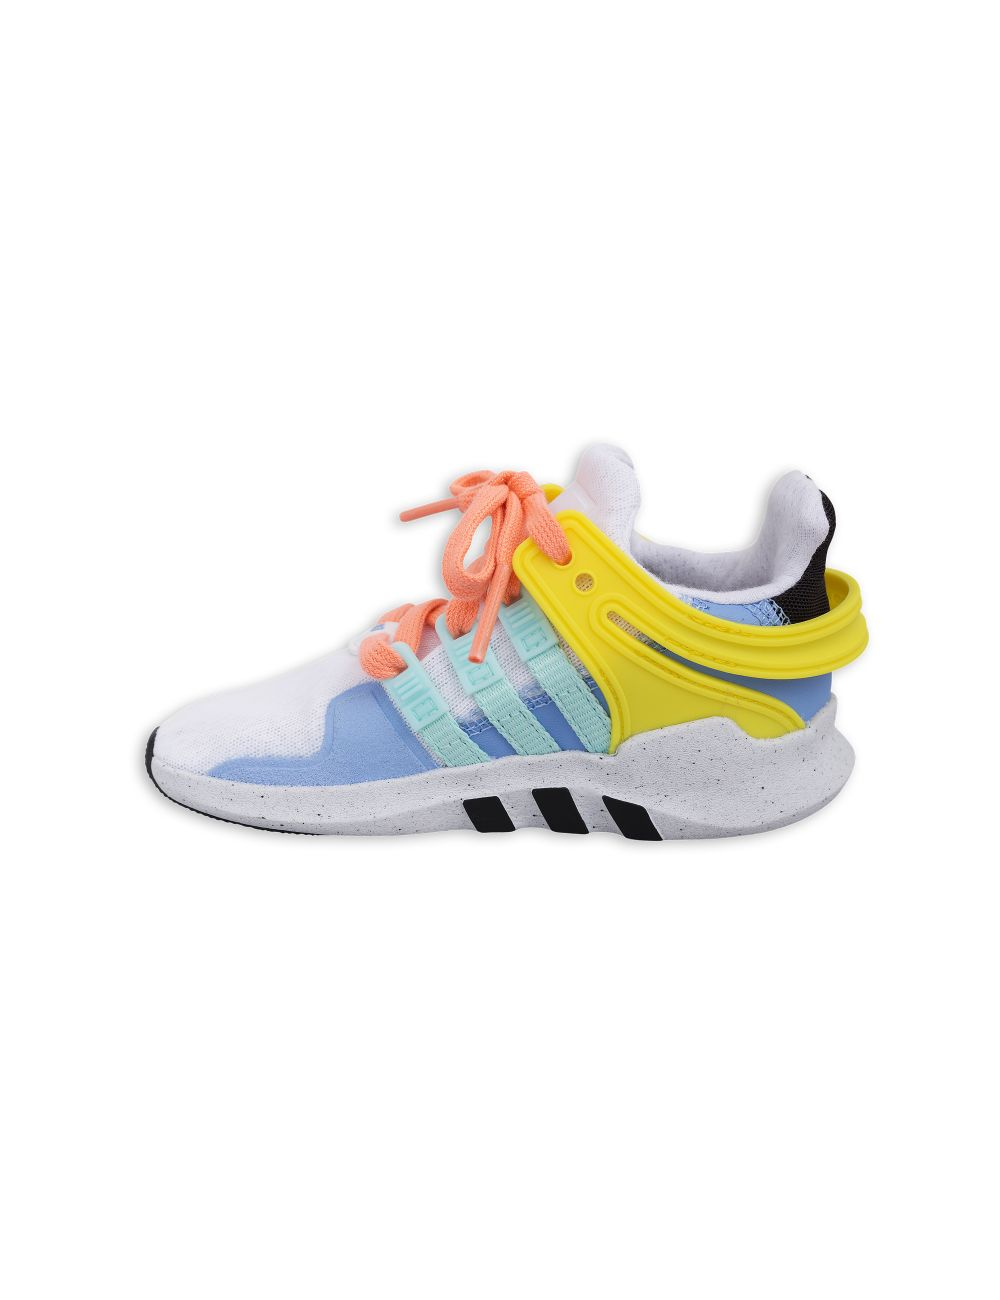 adidas eqt support adv limited edition